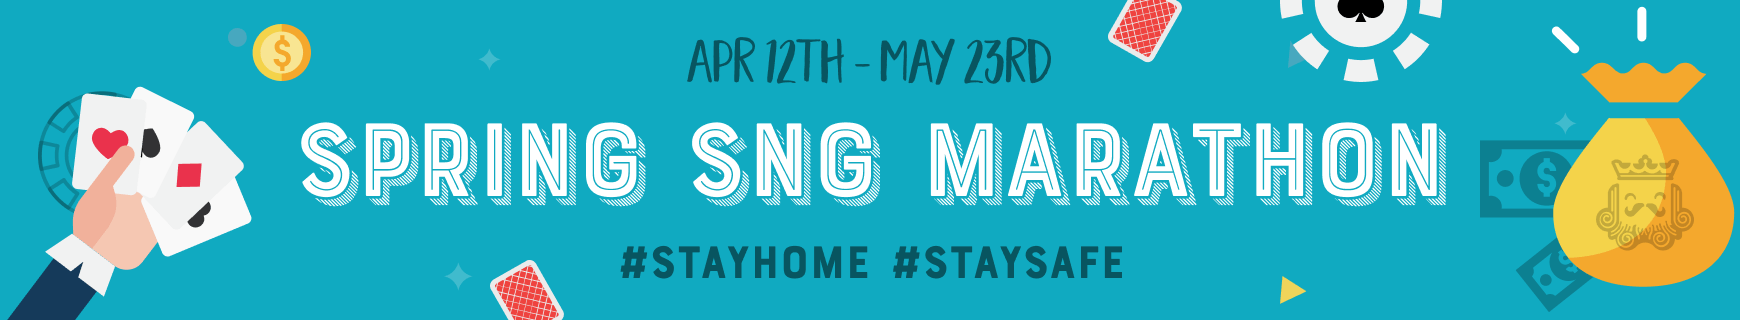 Staysafe   spring sng marathon   dashboard %28870 x 160%29